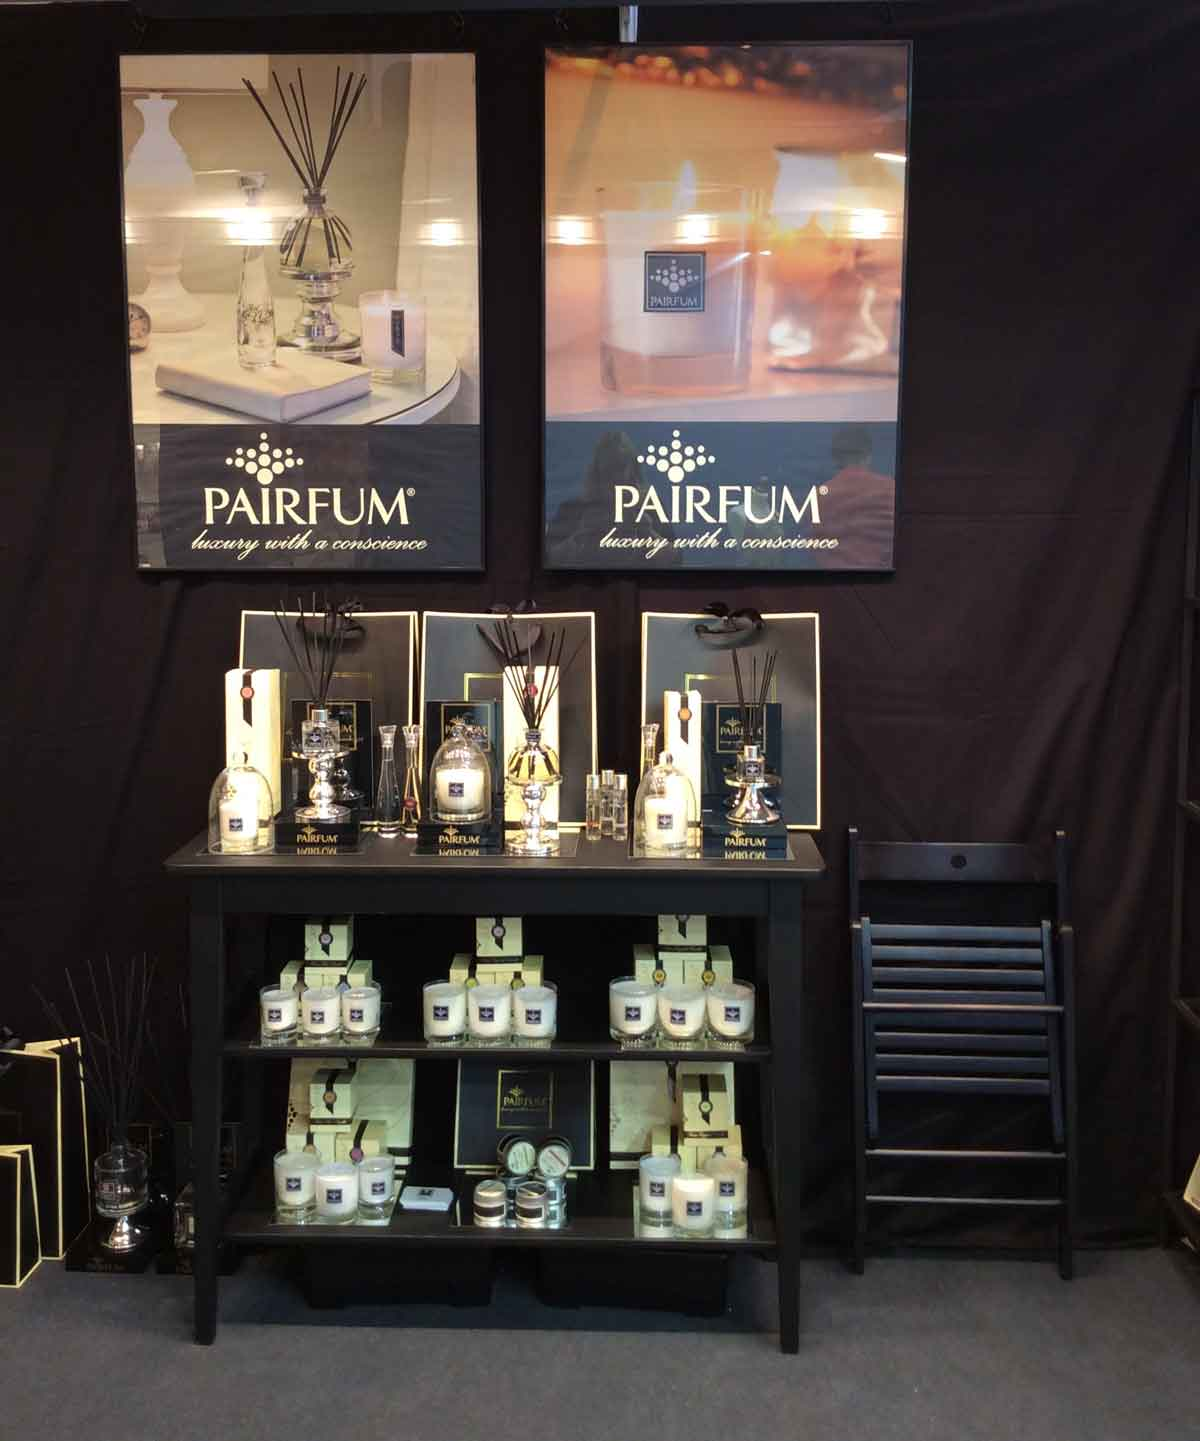 PAIRFUM Candle Wholesale UK Autumnfair Room Fragrance Perfumed Candle Reed Diffusers Room Spray 2280